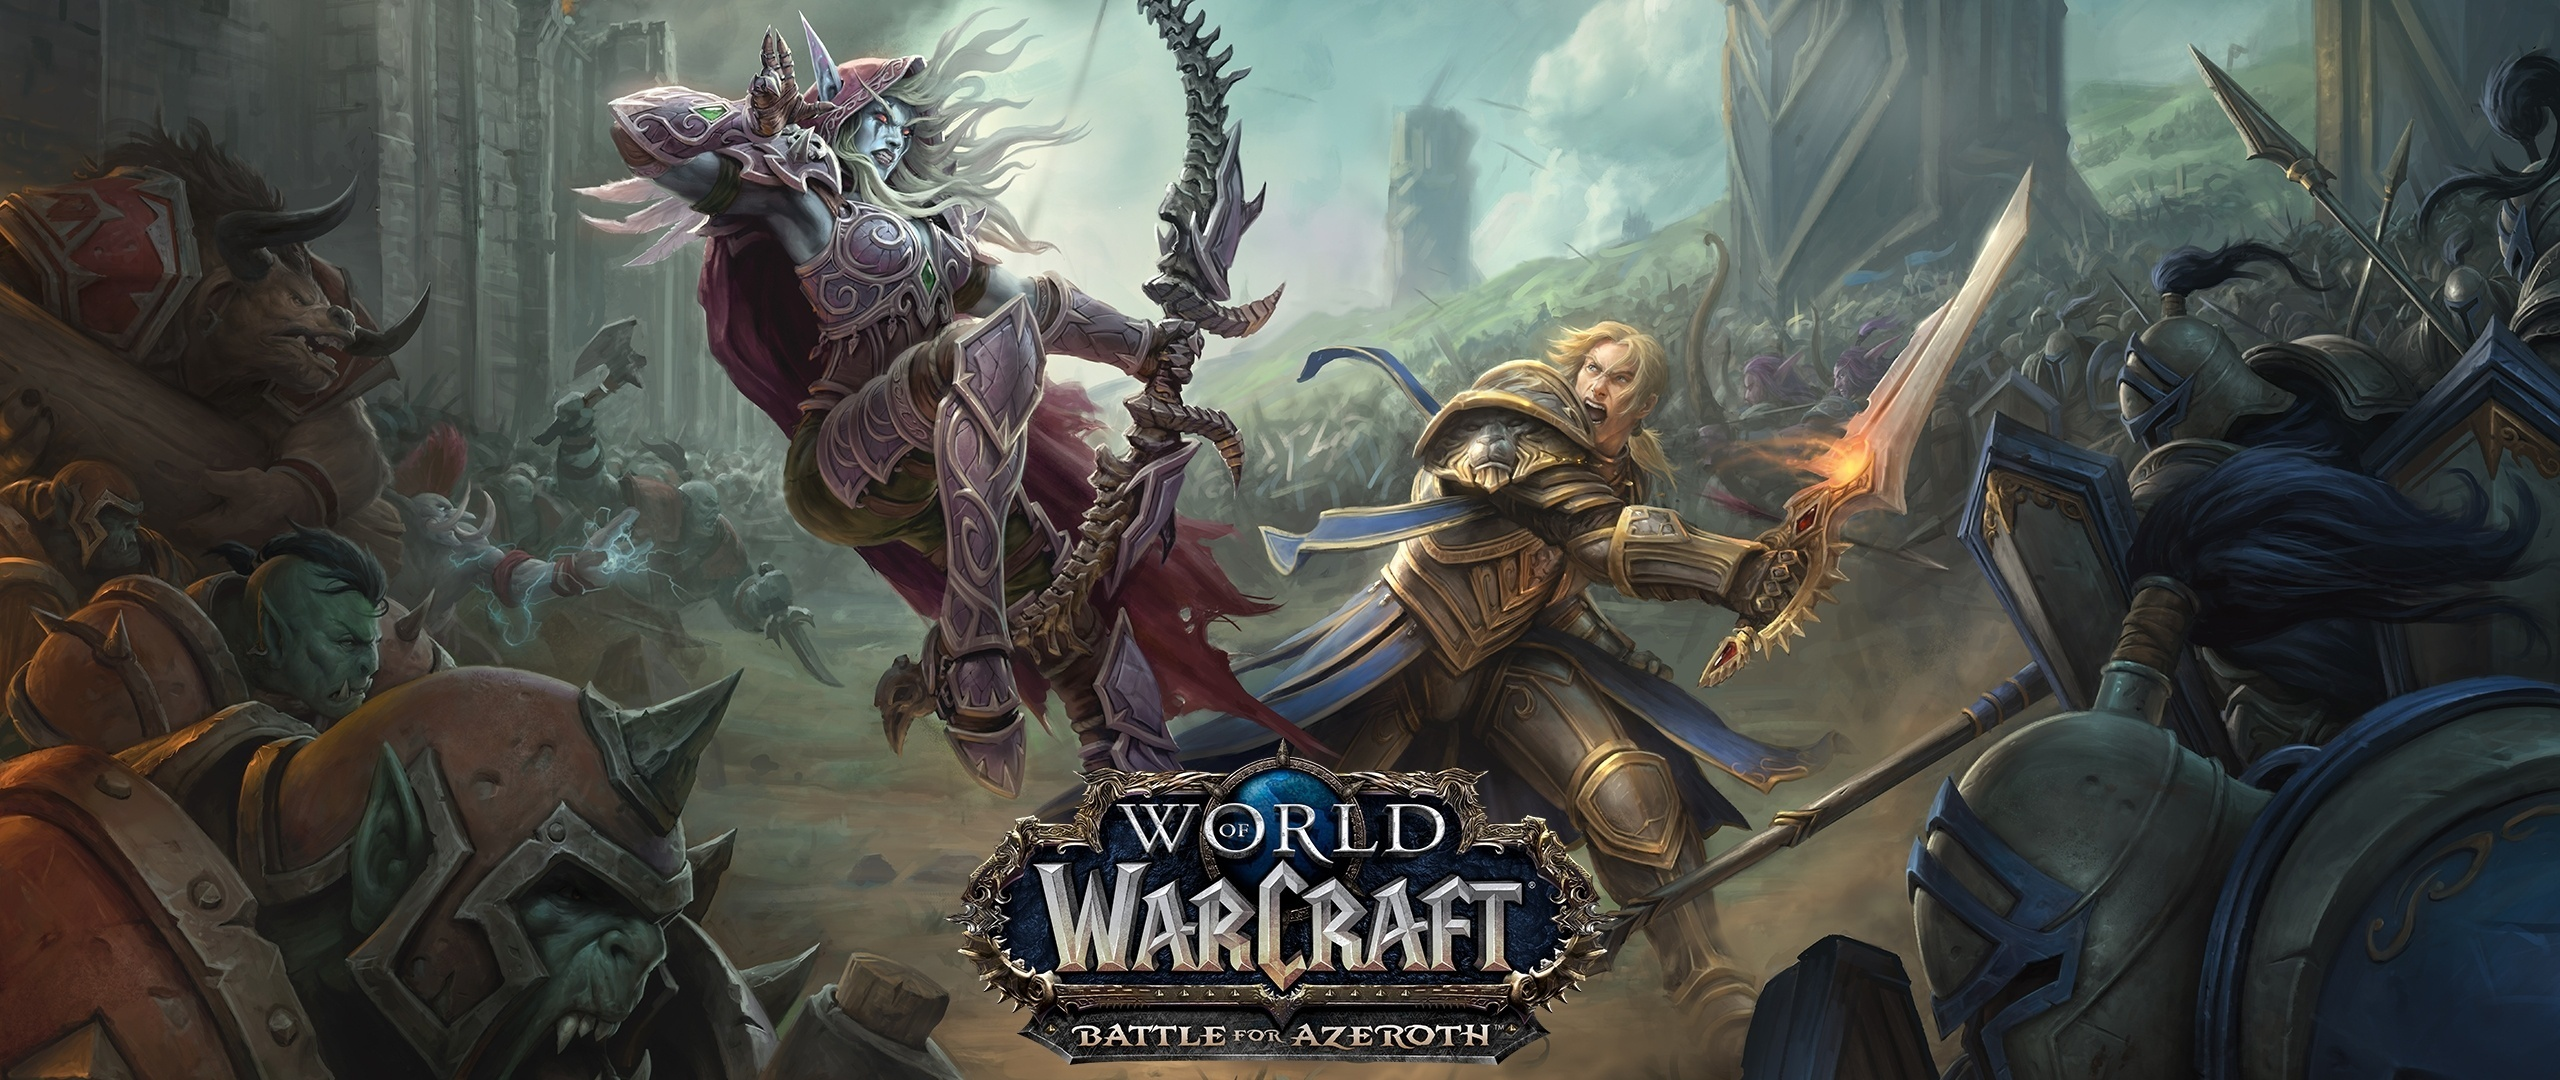 World of warcraft patch 8 0 1 patch notes youtube.